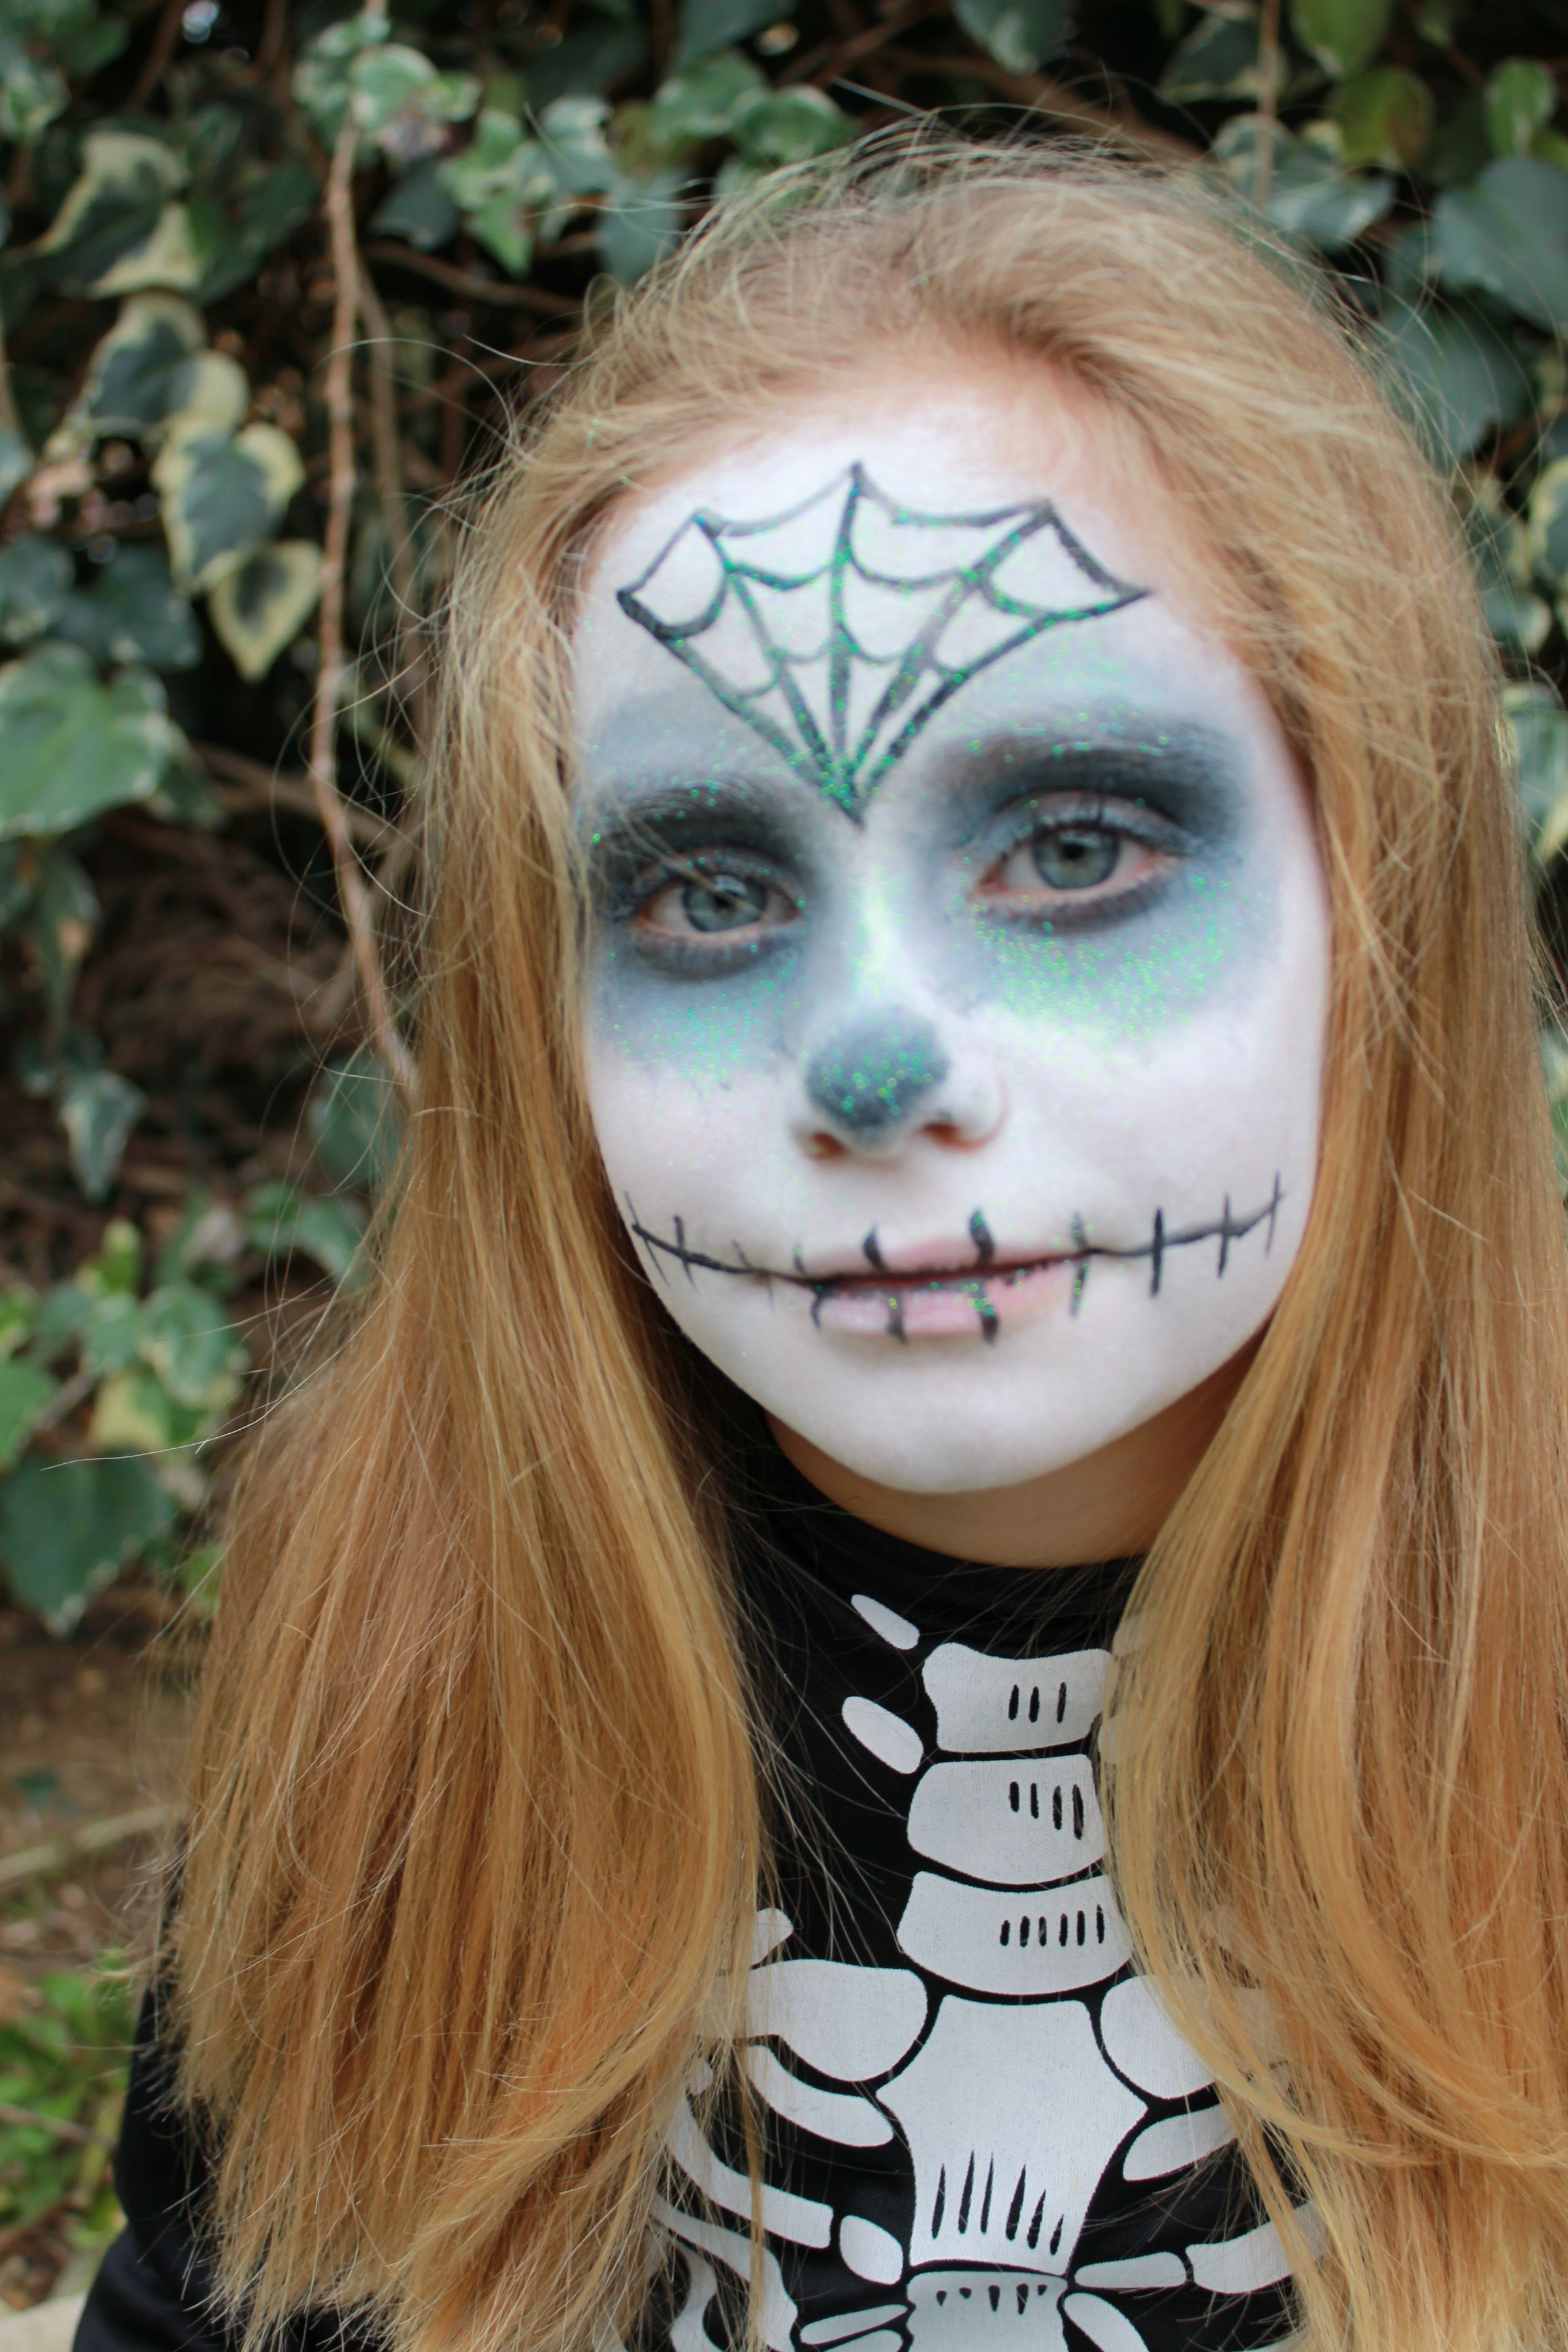 Maquillage halloween maquillage enfant pinterest - Maquillage enfant sorciere ...